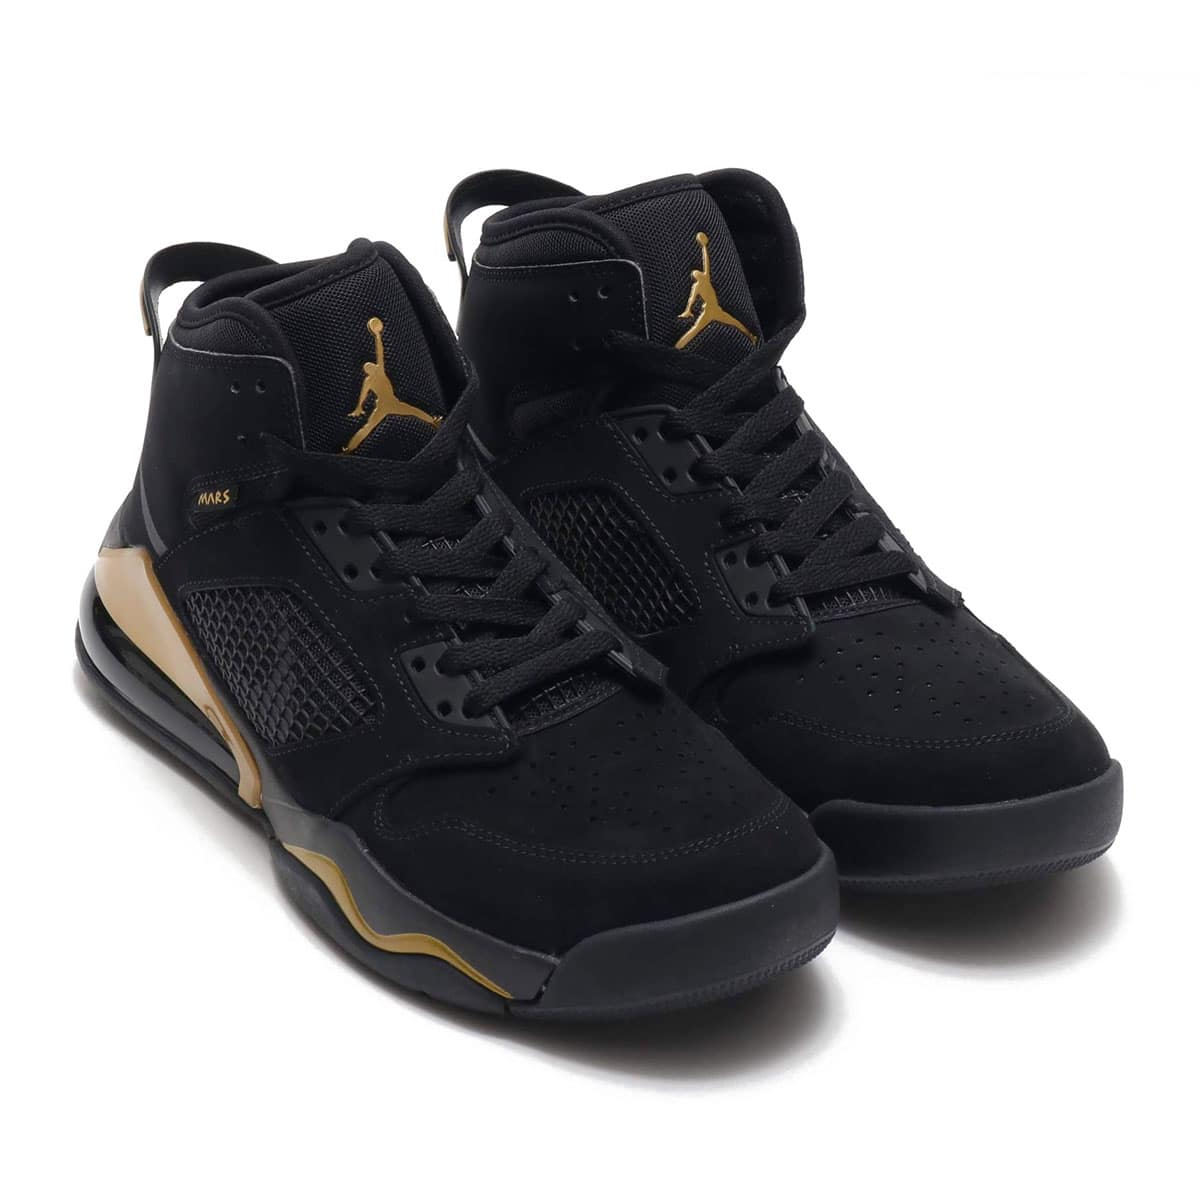 NIKE JORDAN MARS 270 BLACK/ANTHRACITE-METALLIC GOLD-BLACK 19HO-I_photo_large